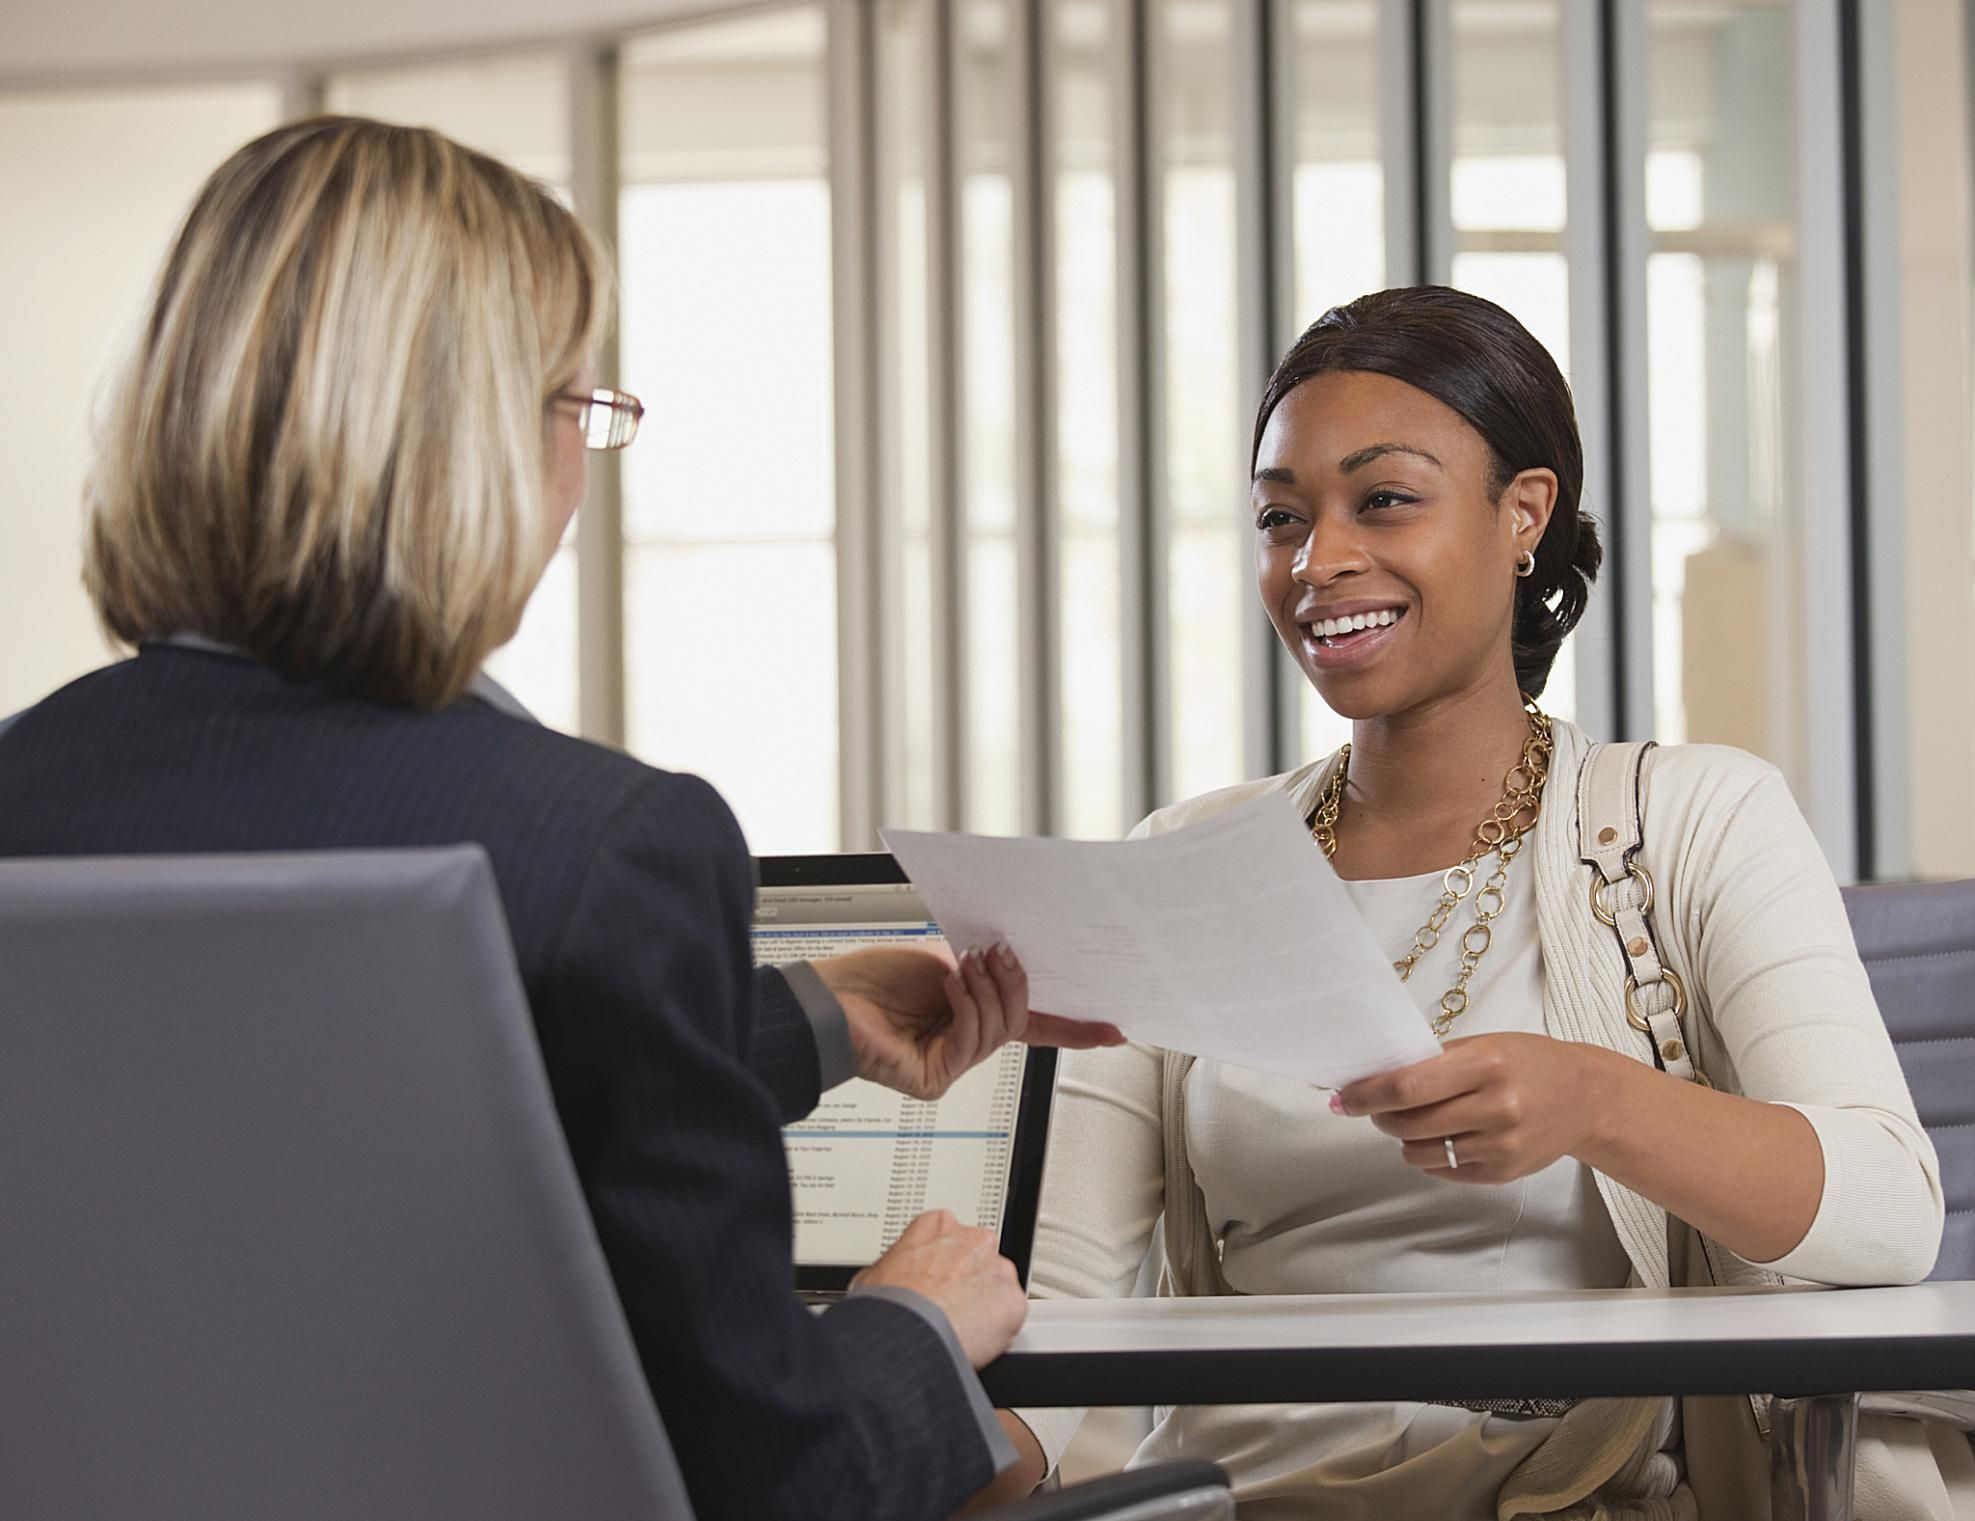 Handing In A Resume In Person Resume Tips That Will Land You An